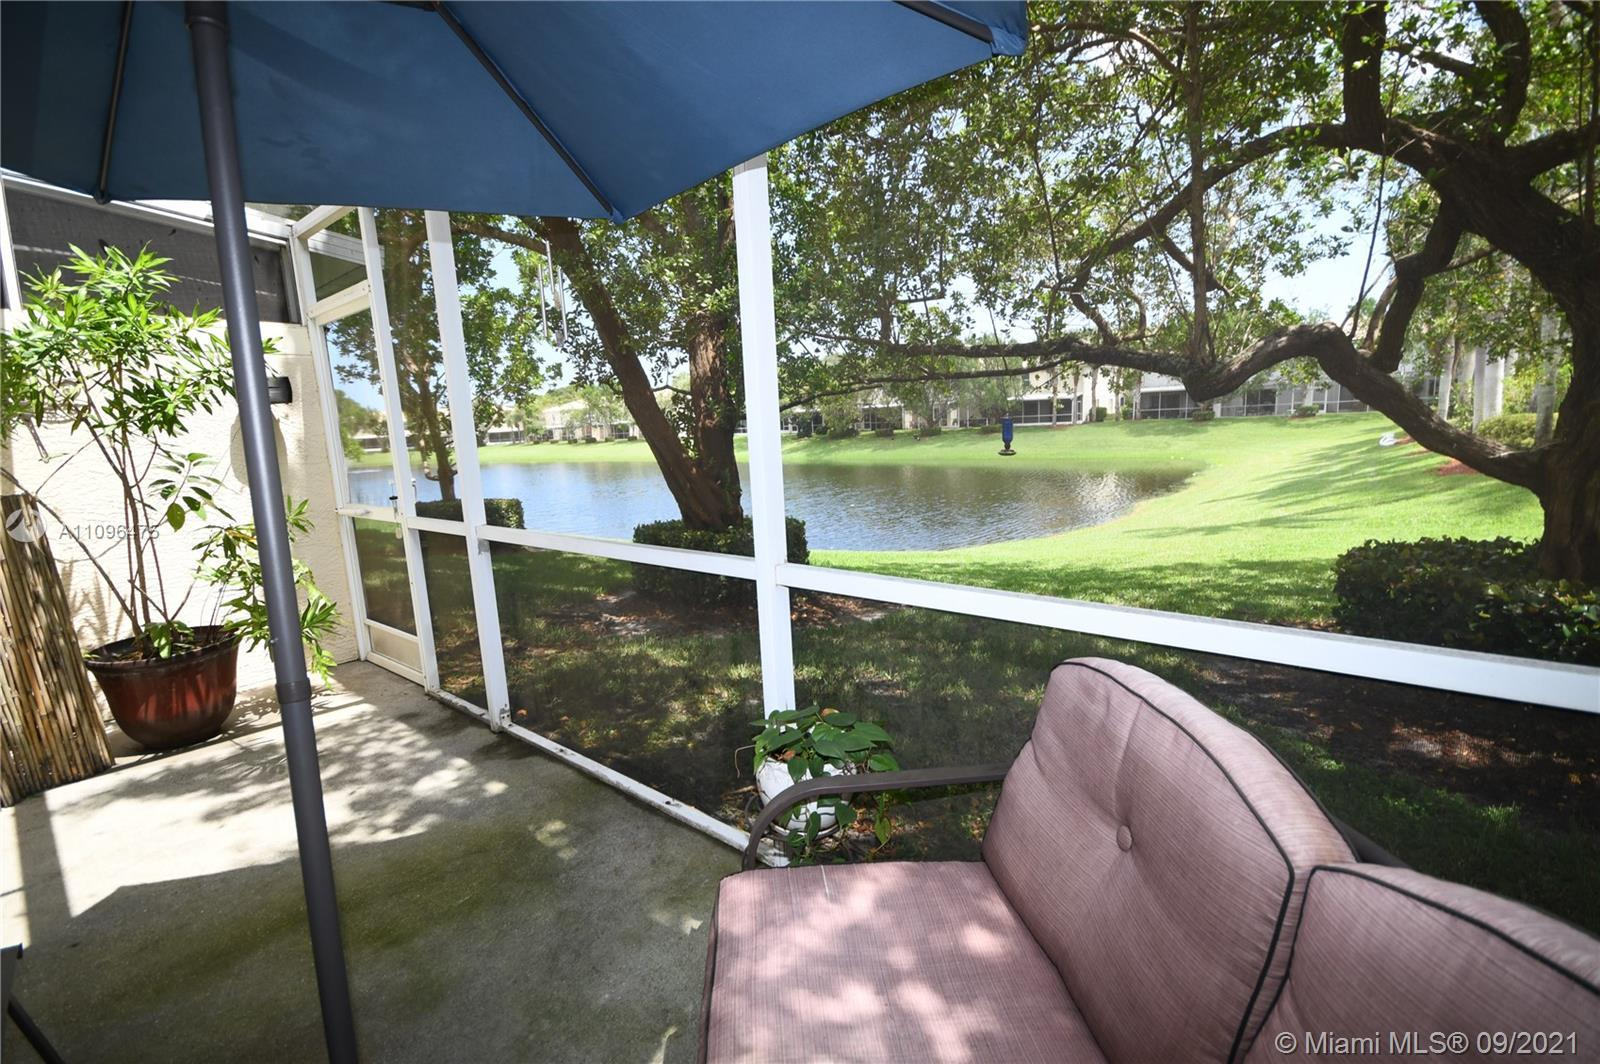 Much sought after 2 bed 2 1/2 bath townhouse w/water view in the heart of Jupiter. This 2 story unit